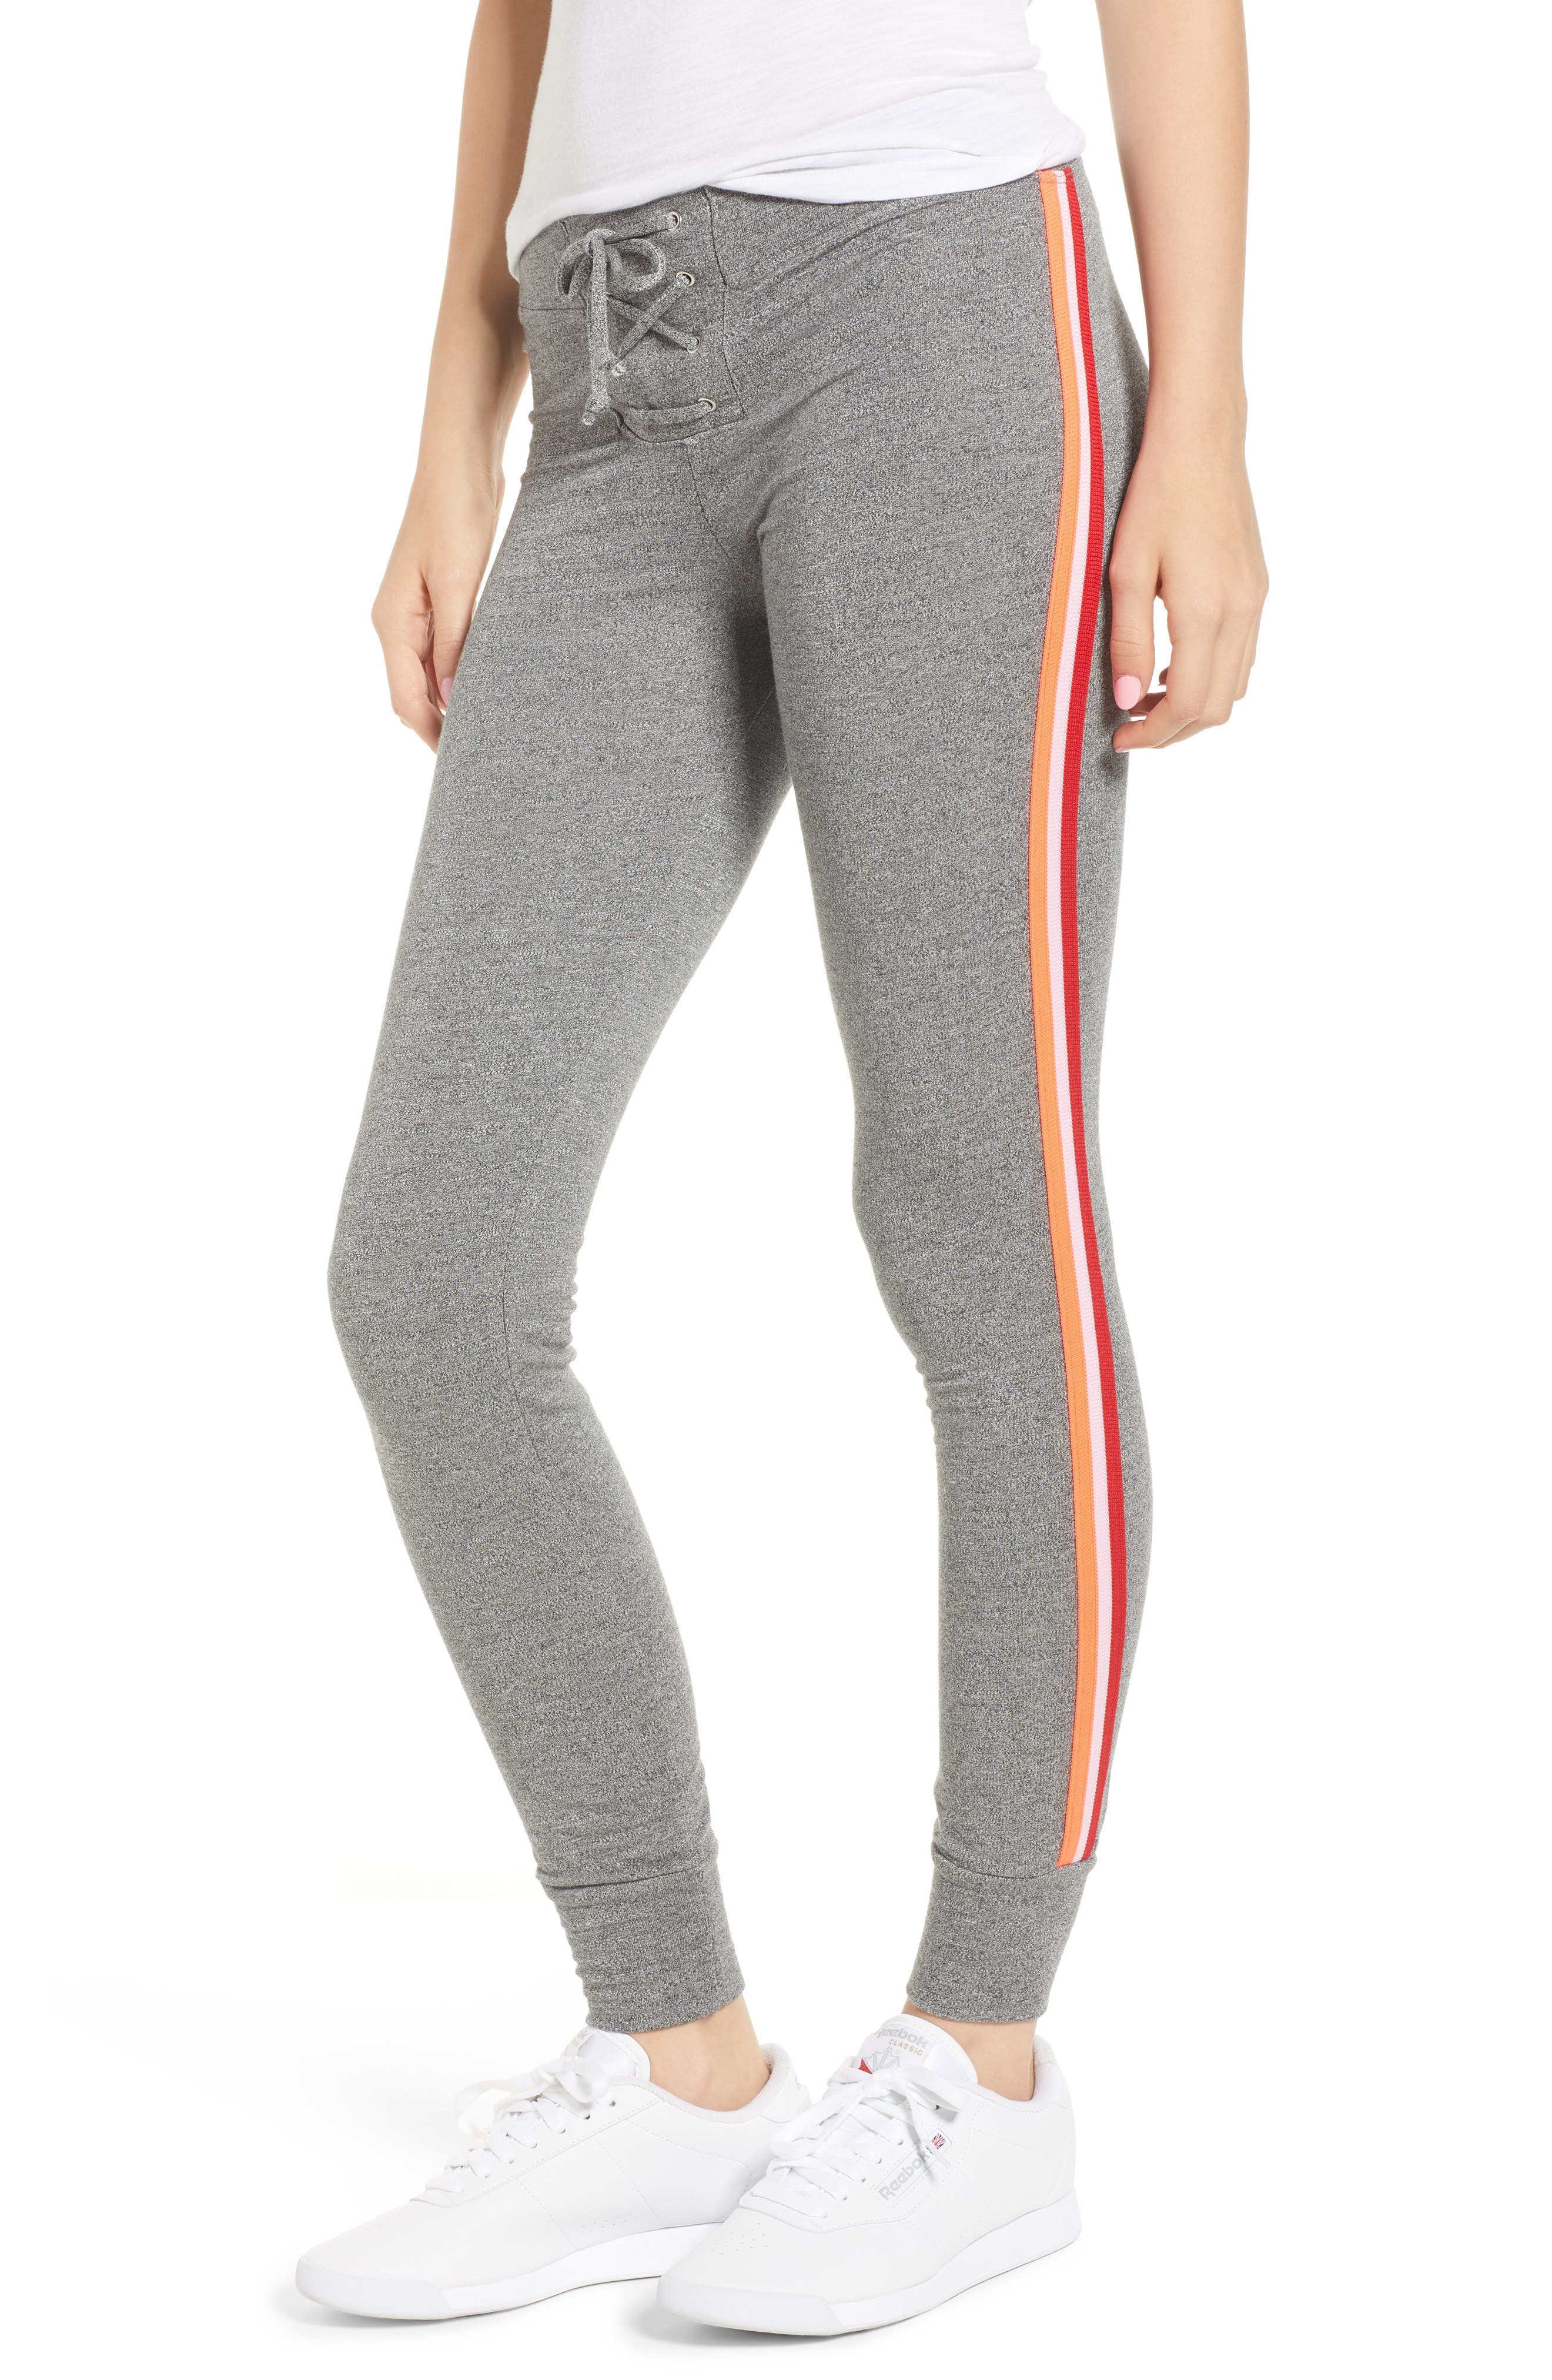 SUNDRY Lace-Up Skinny Sweatpants, Main, color, 039